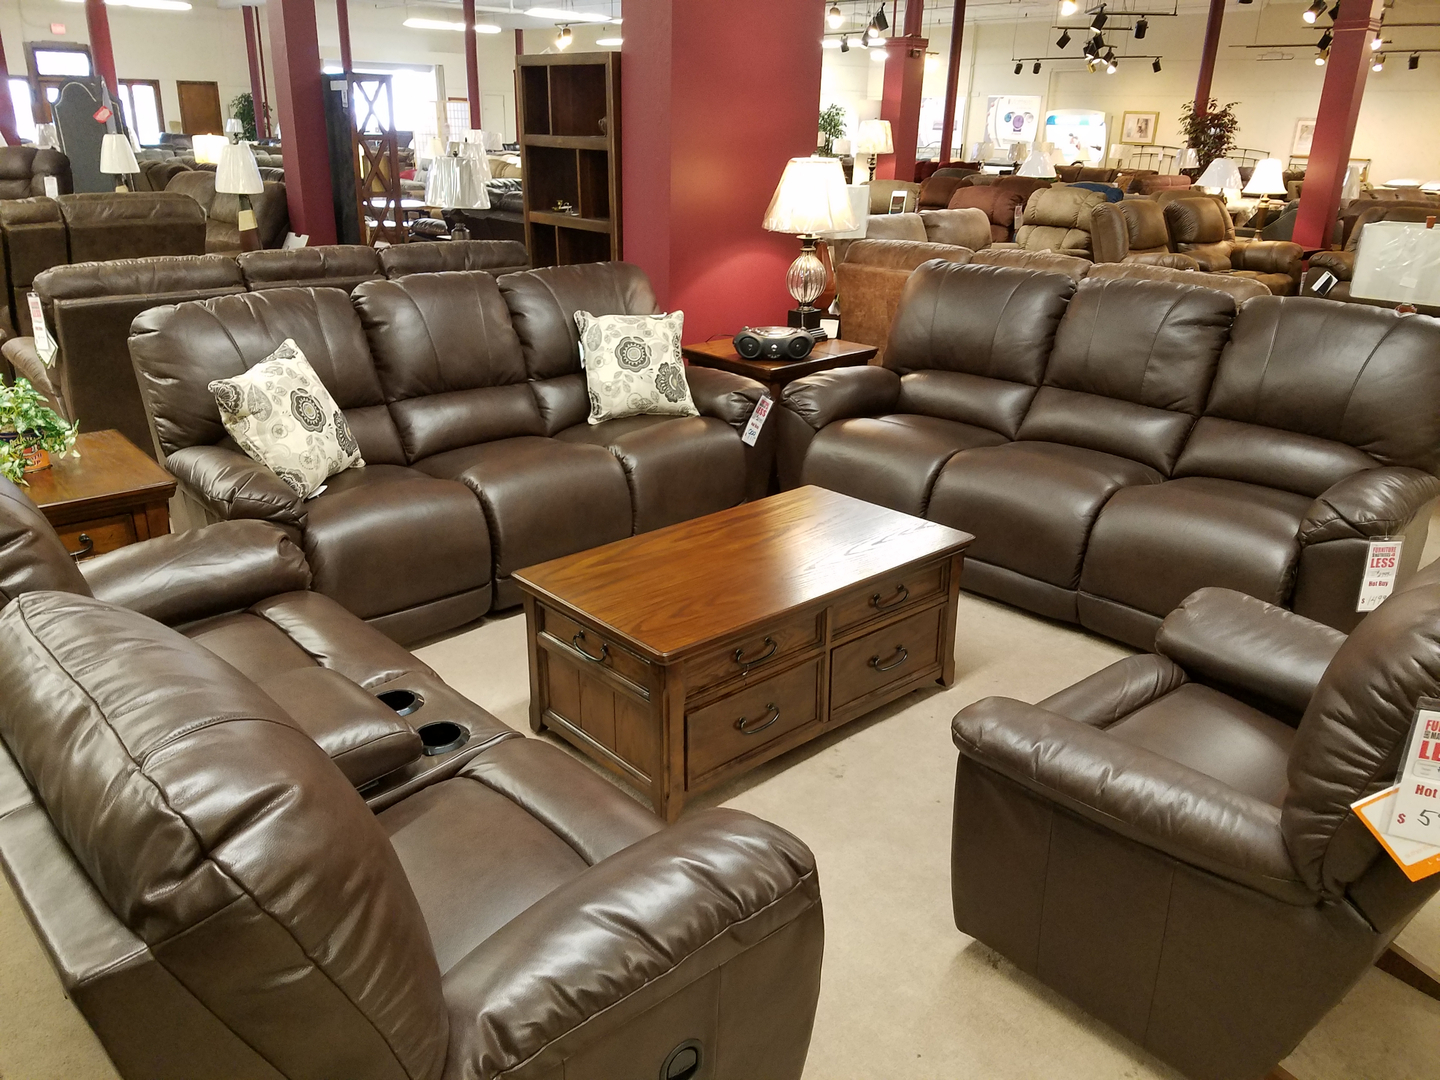 Living Room Furniture For Less Furniture And Mattresses 4 Less Welcome Home